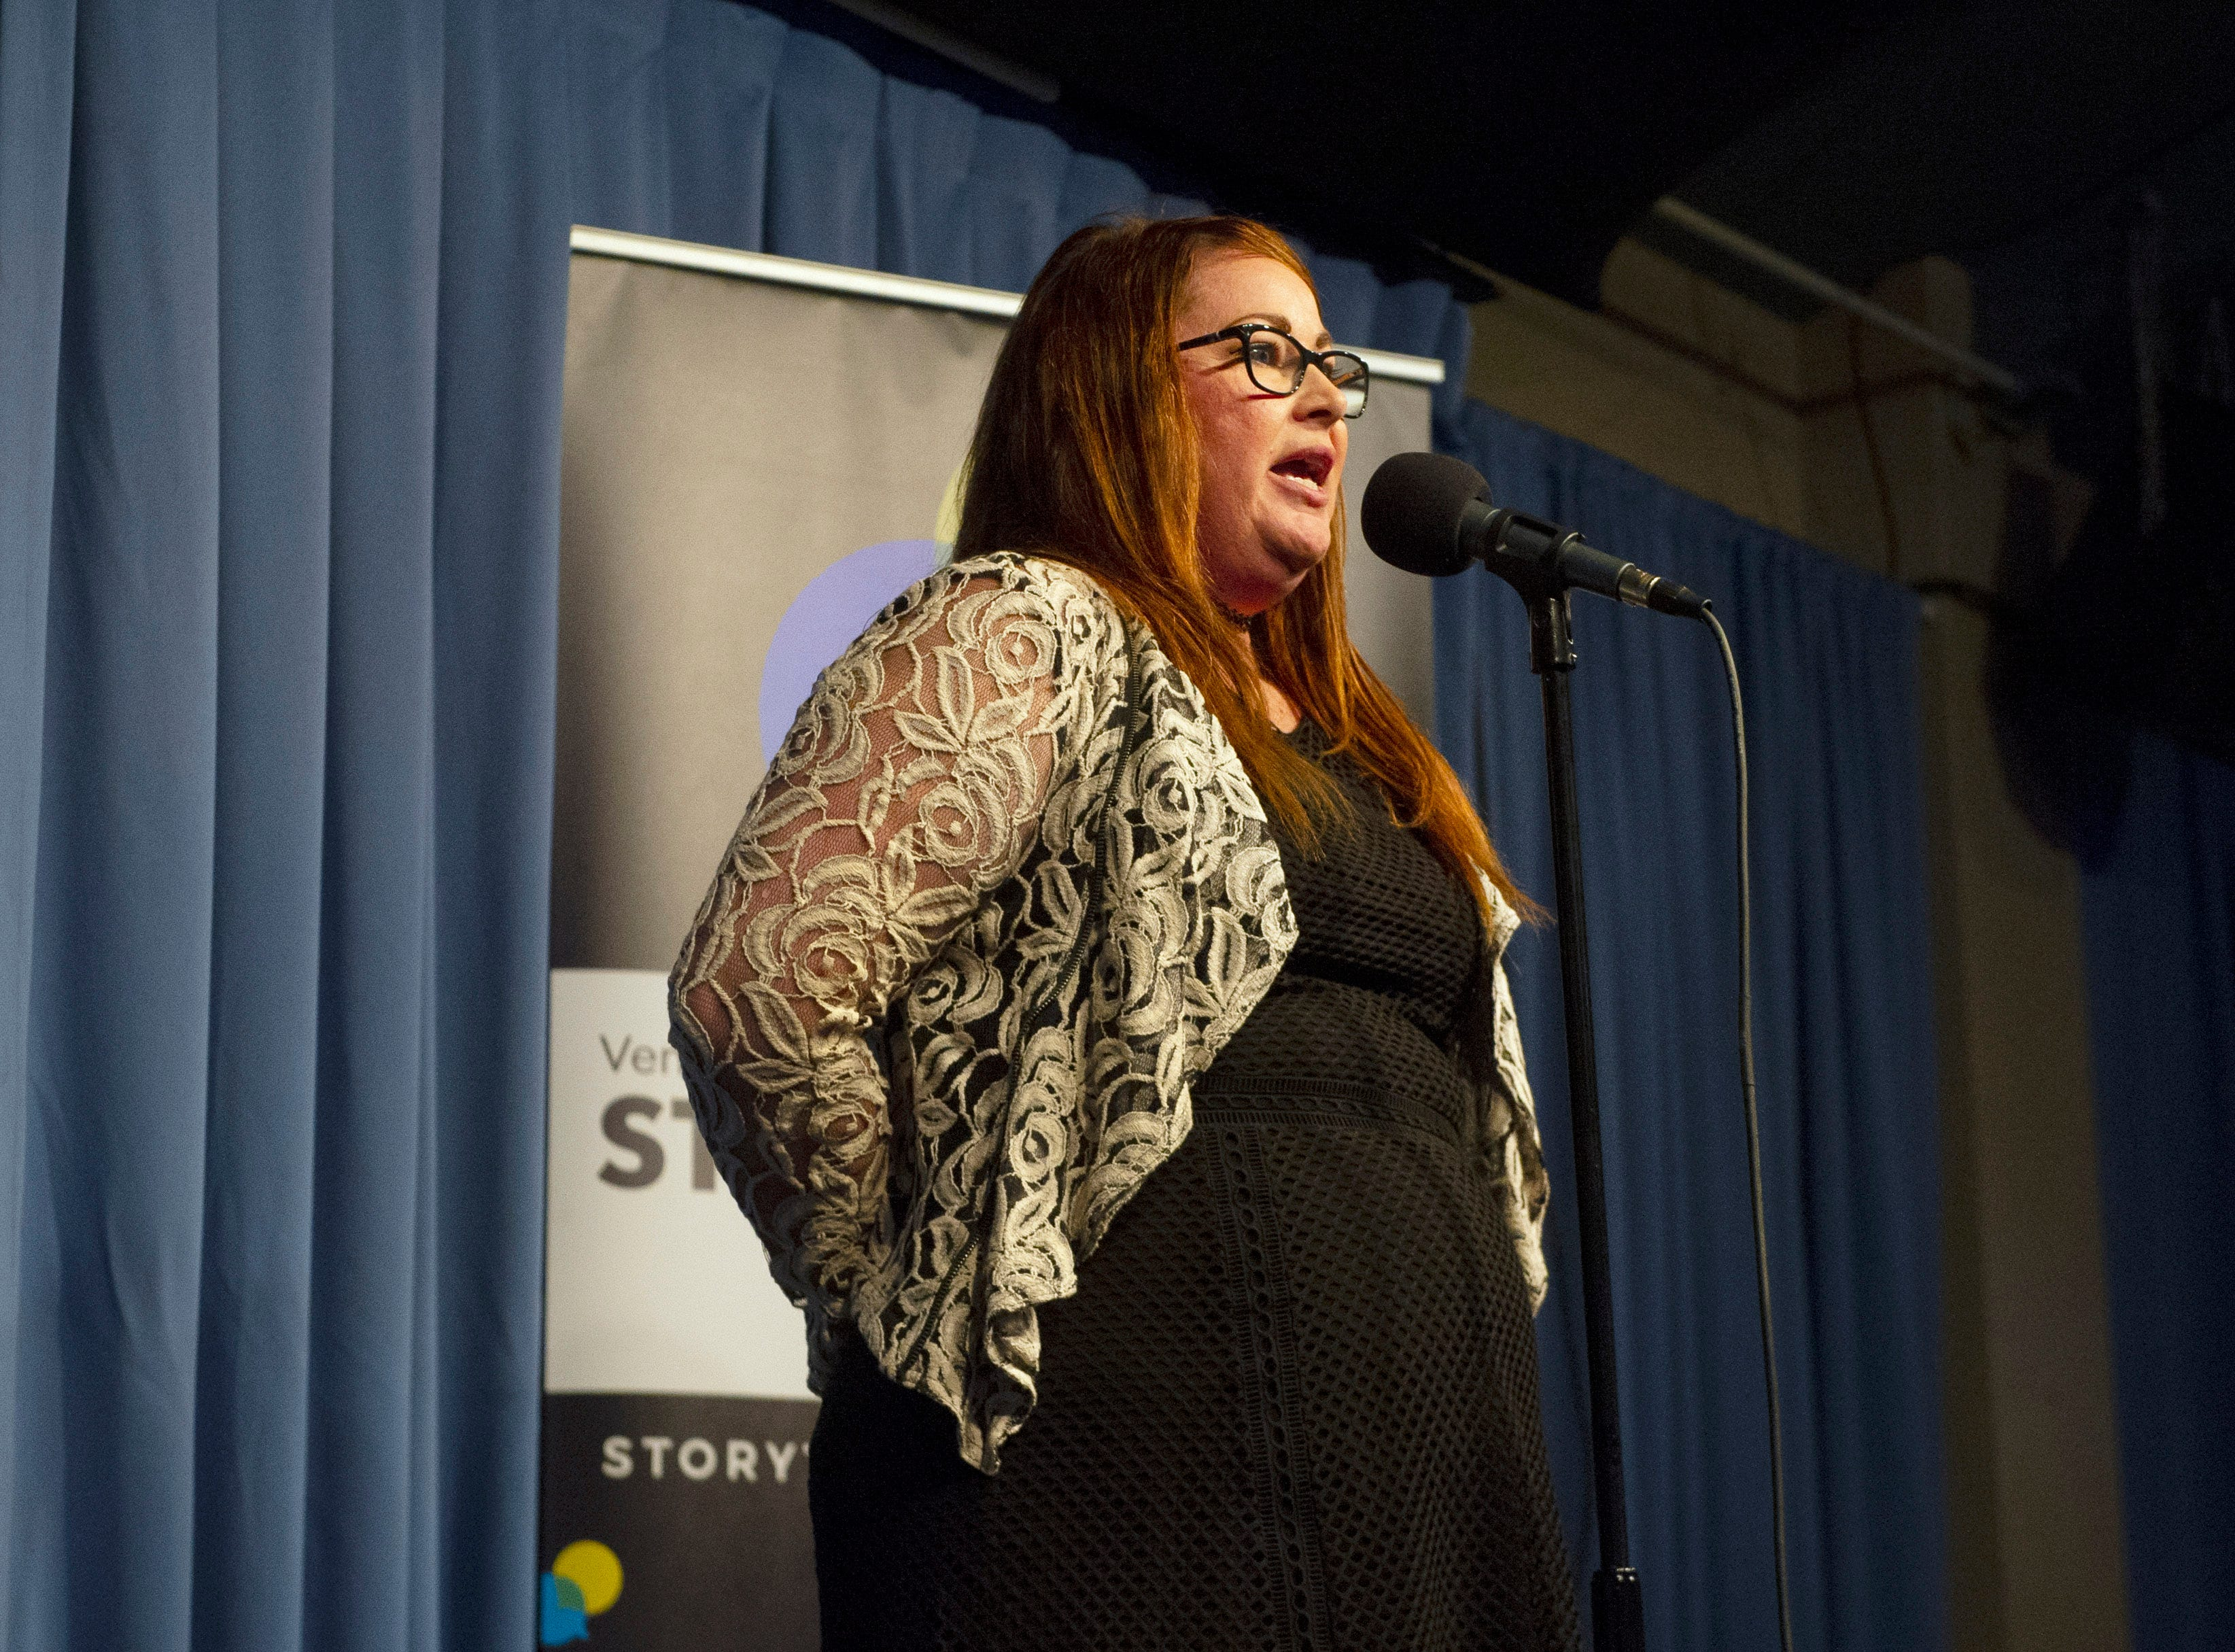 Michelle Rogers shares the of donating a kidney as part of the live Ventura Storytellers Project event at the Ventura Harbor Comedy Club on Wednesday.